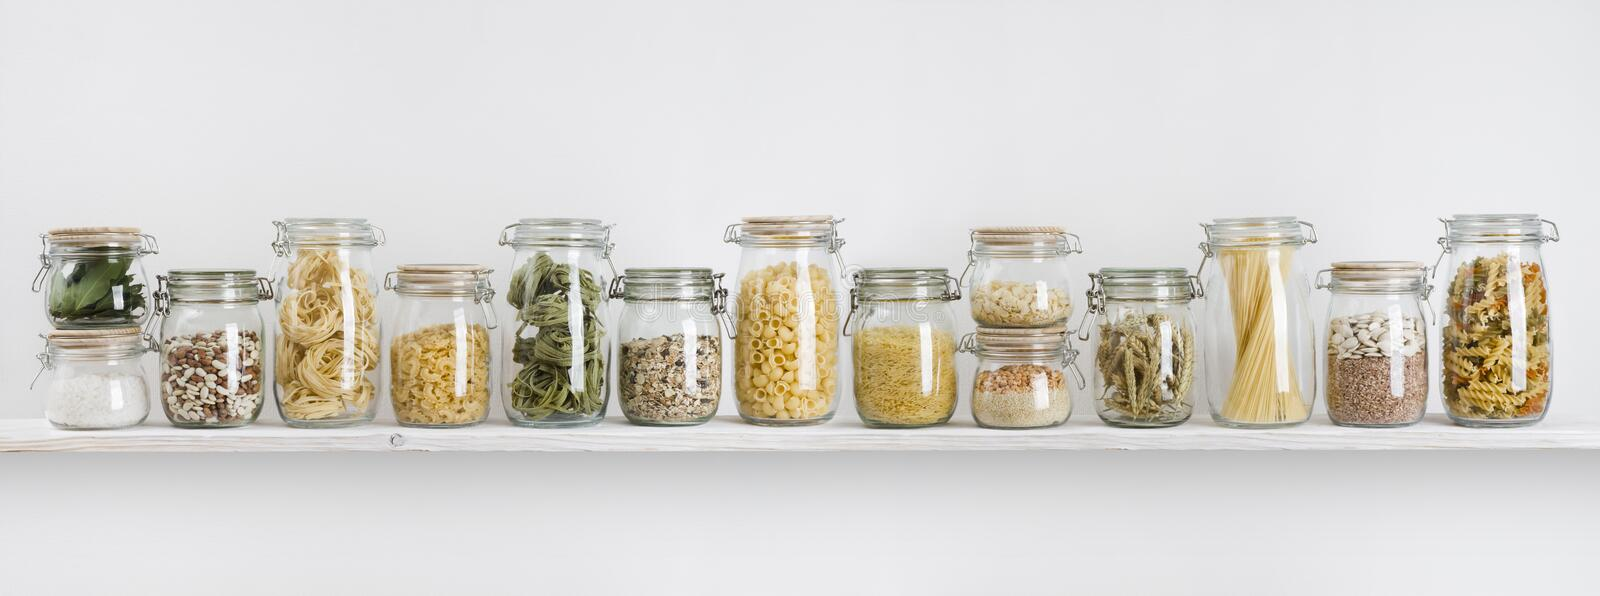 Assortment of uncooked groceries in glass jars arranged on shelf stock image